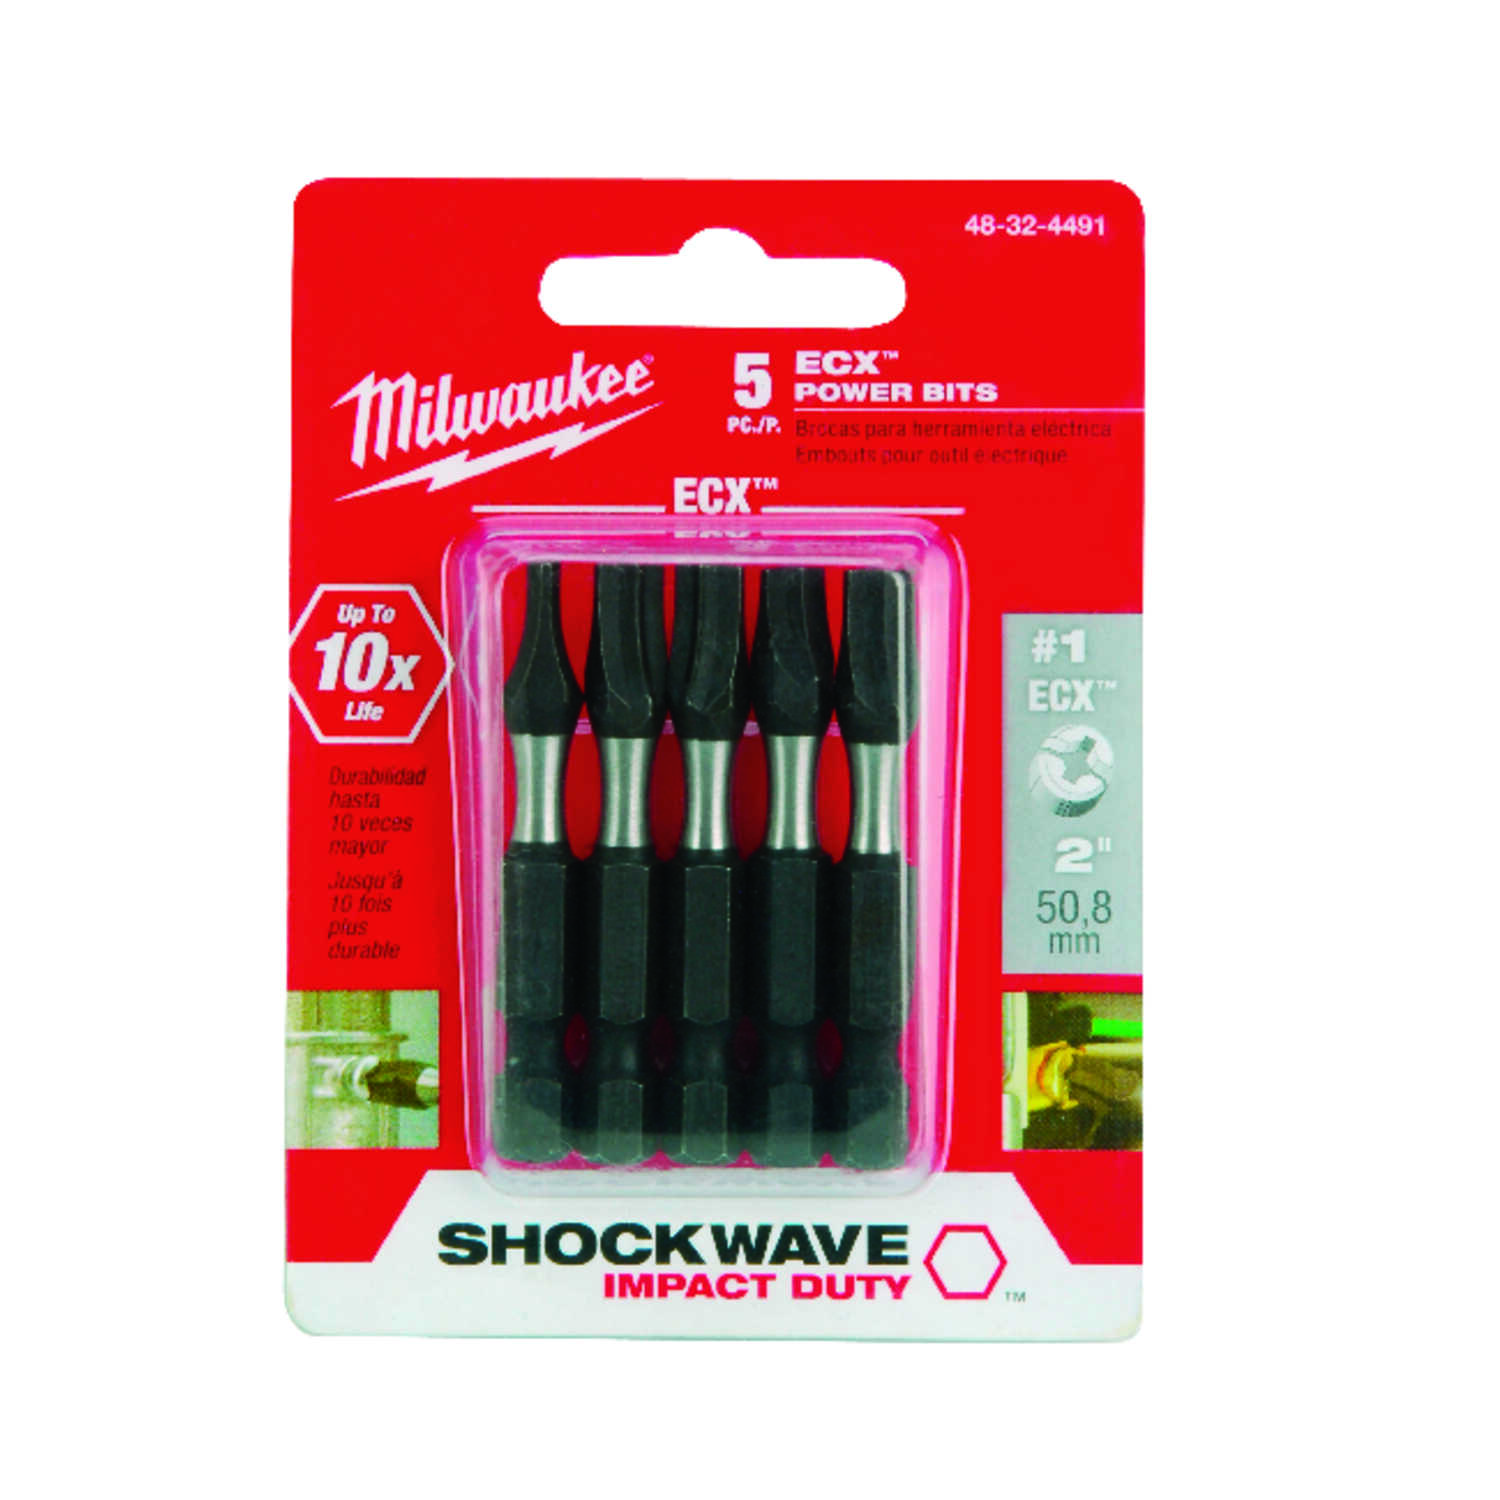 Milwaukee  SHOCKWAVE  ECX  2   x 2 in. L Impact Duty  Impact Power Bit Set  Alloy Steel  Hex Shank